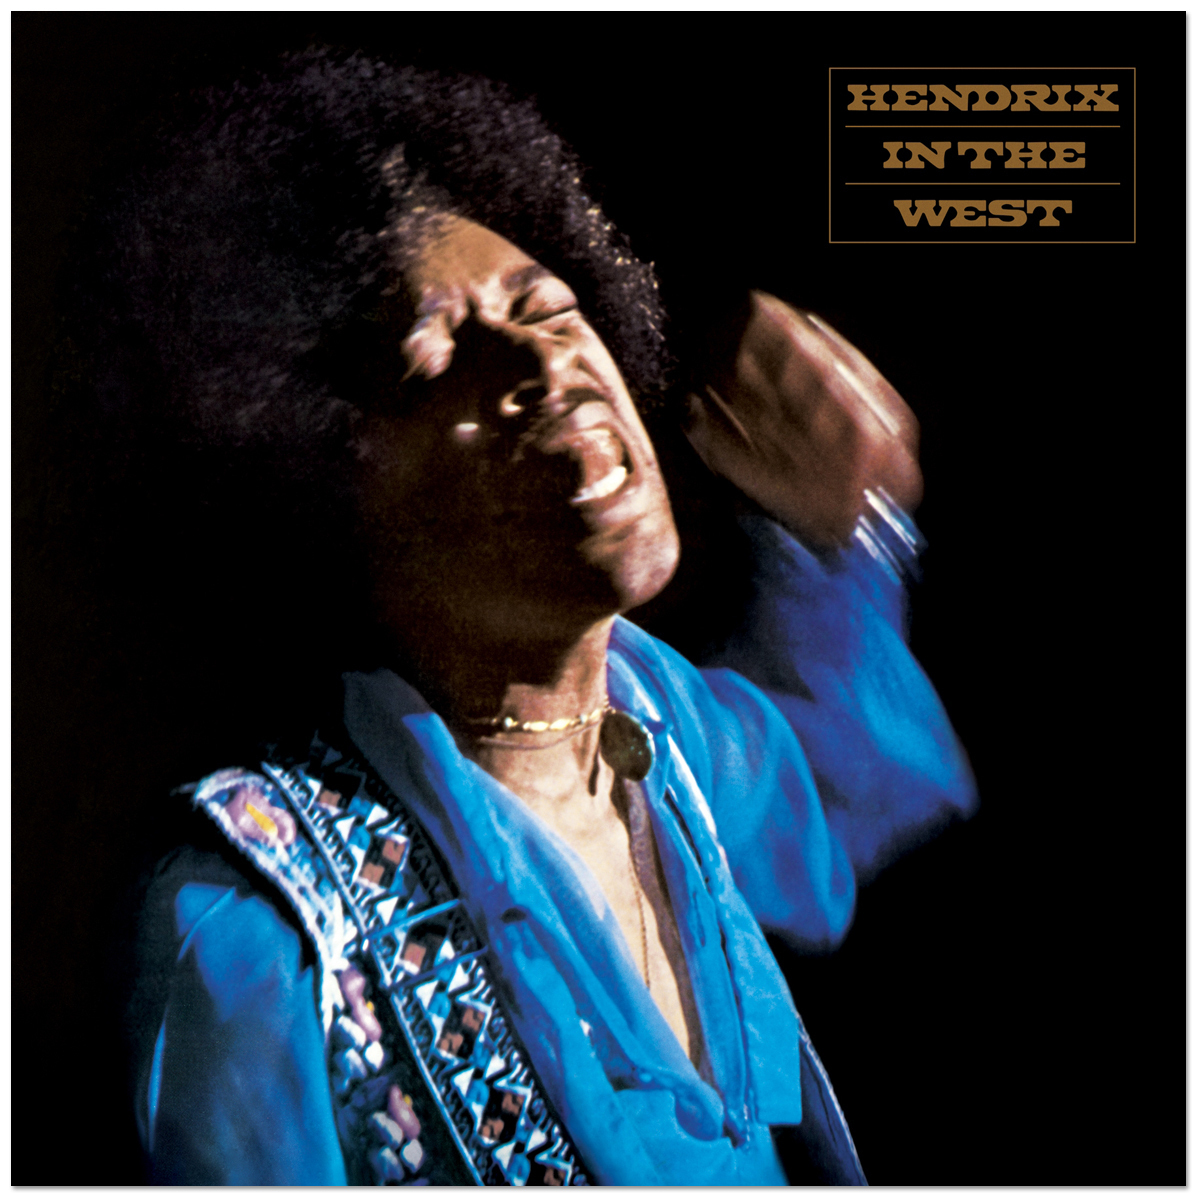 Jimi Hendrix: Hendrix in the West CD Digipak